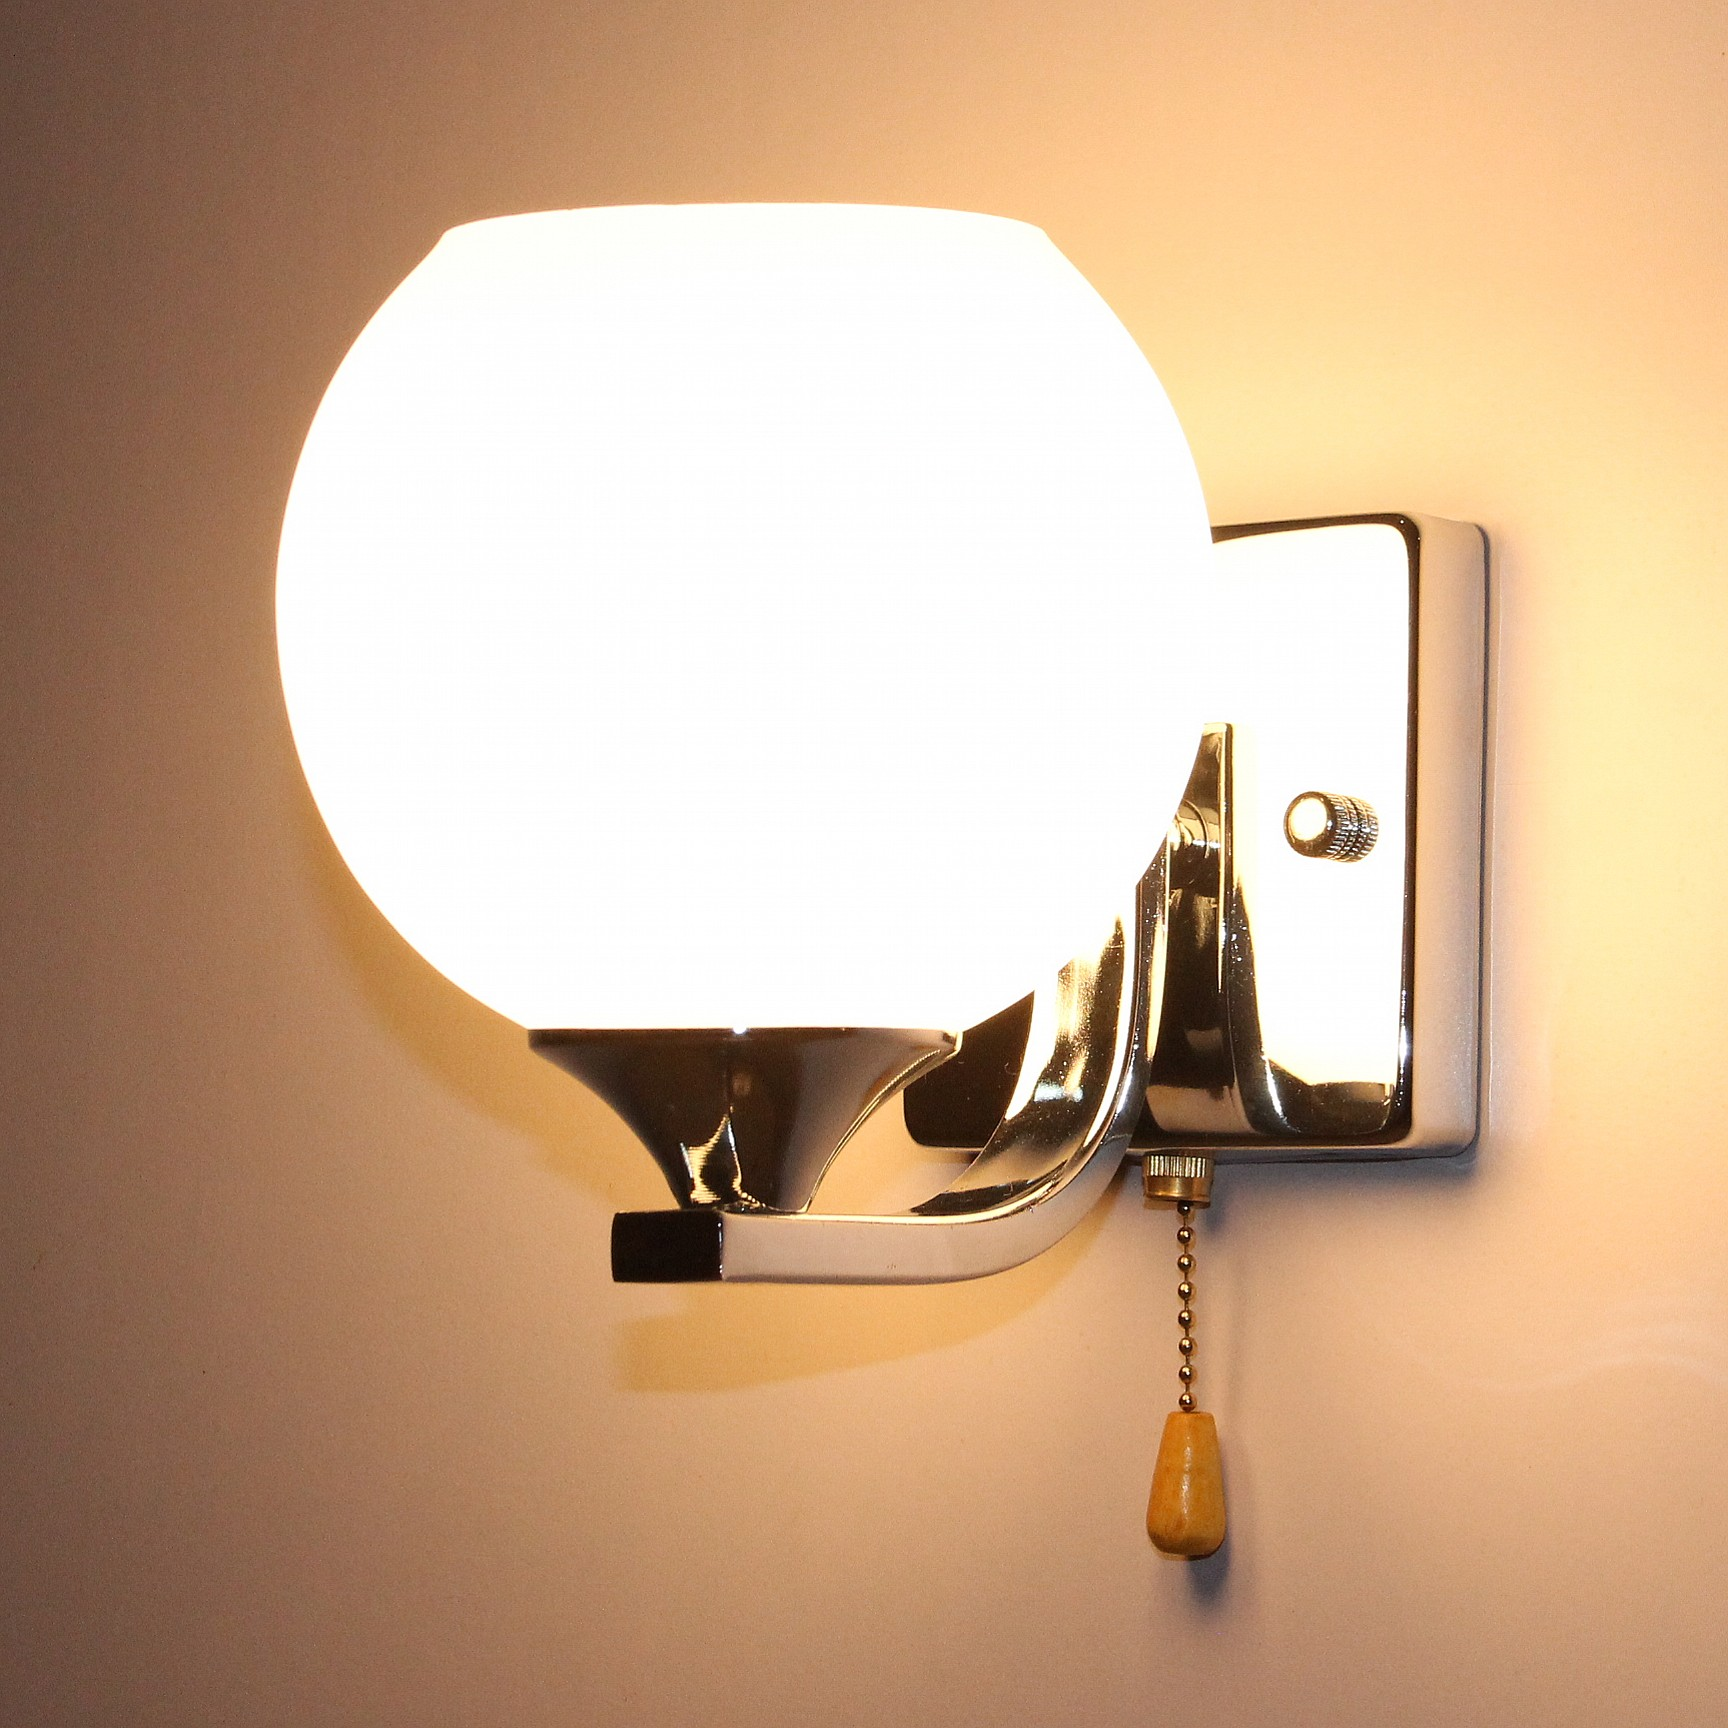 Wall Sconce Lamp With Switch : Aliexpress.com : Buy Wall lamp ofhead modern brief led wall lights circle with switch dimming ...